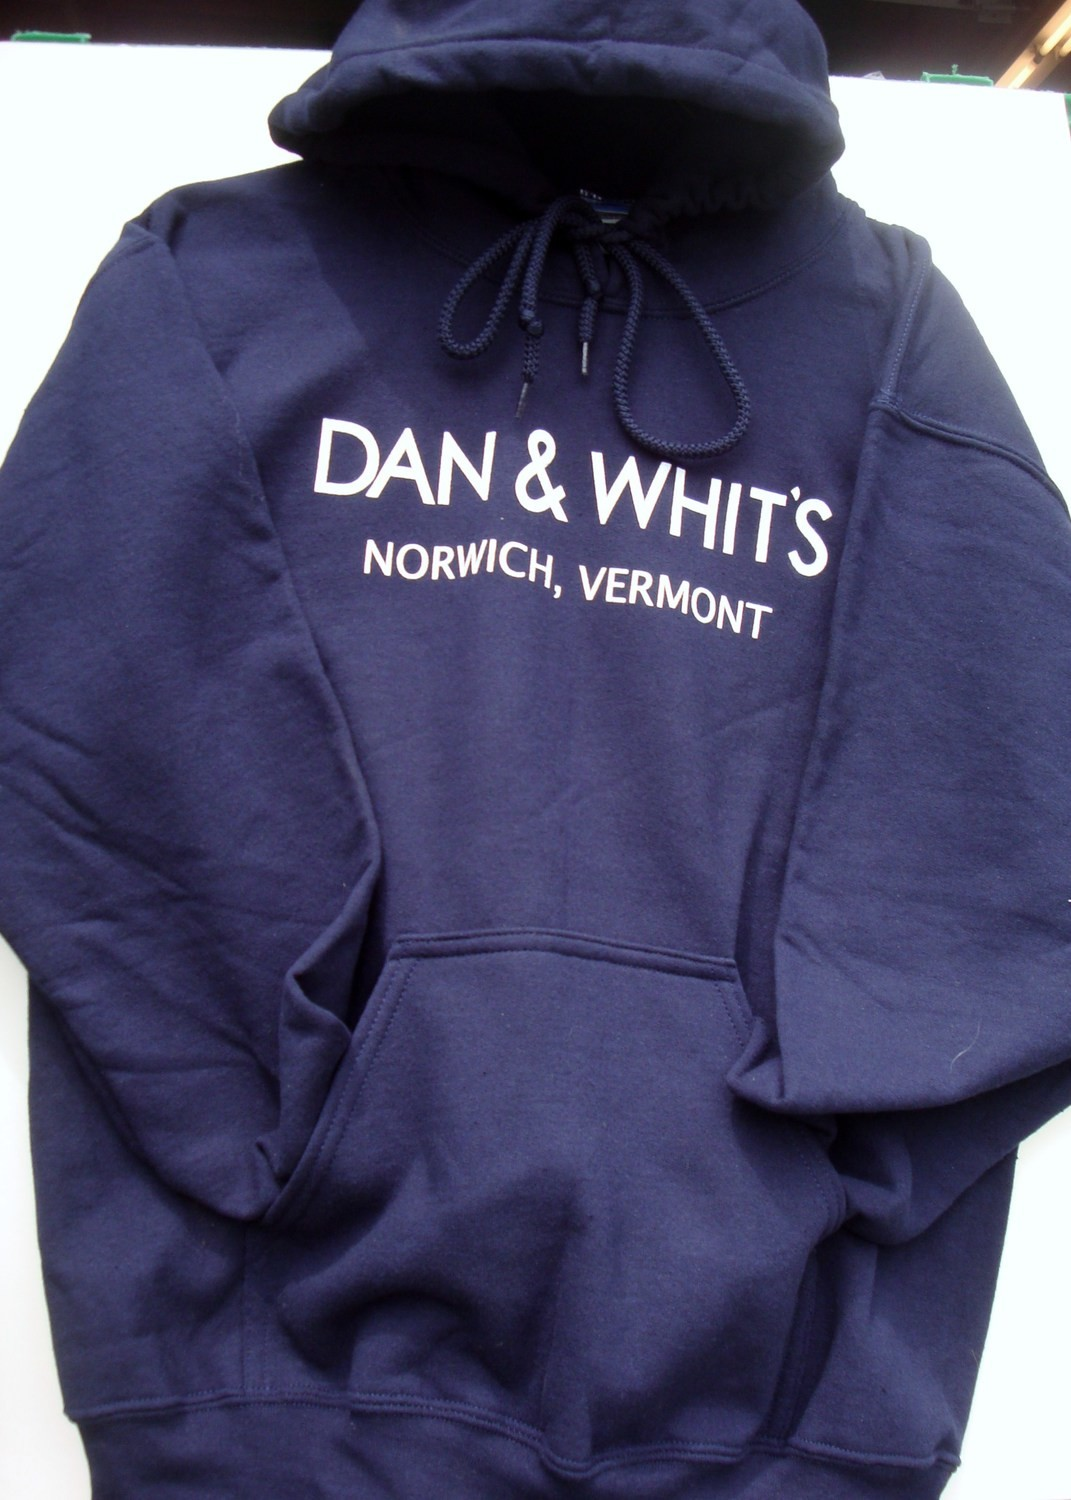 Dan & Whit's Sweat Shirt, Adult